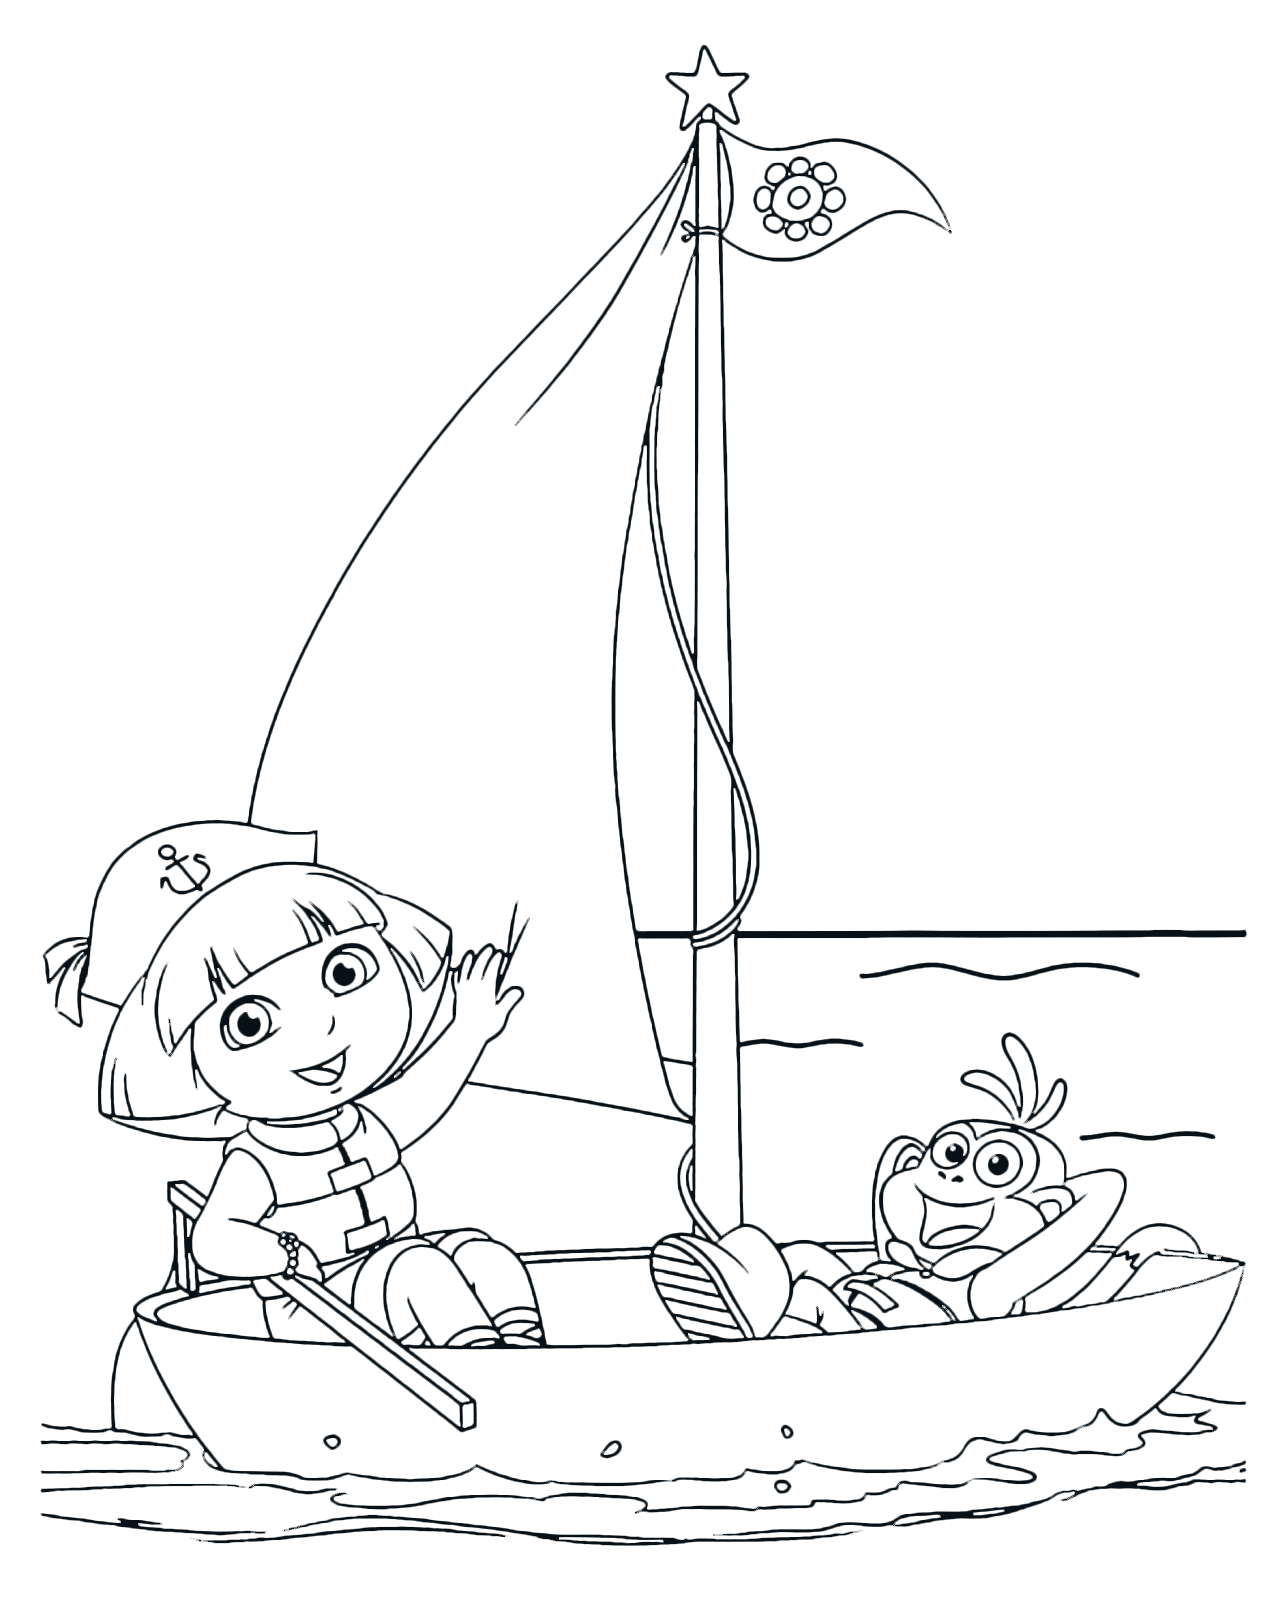 Dora the Explorer - Dora and Boots on the sailboat